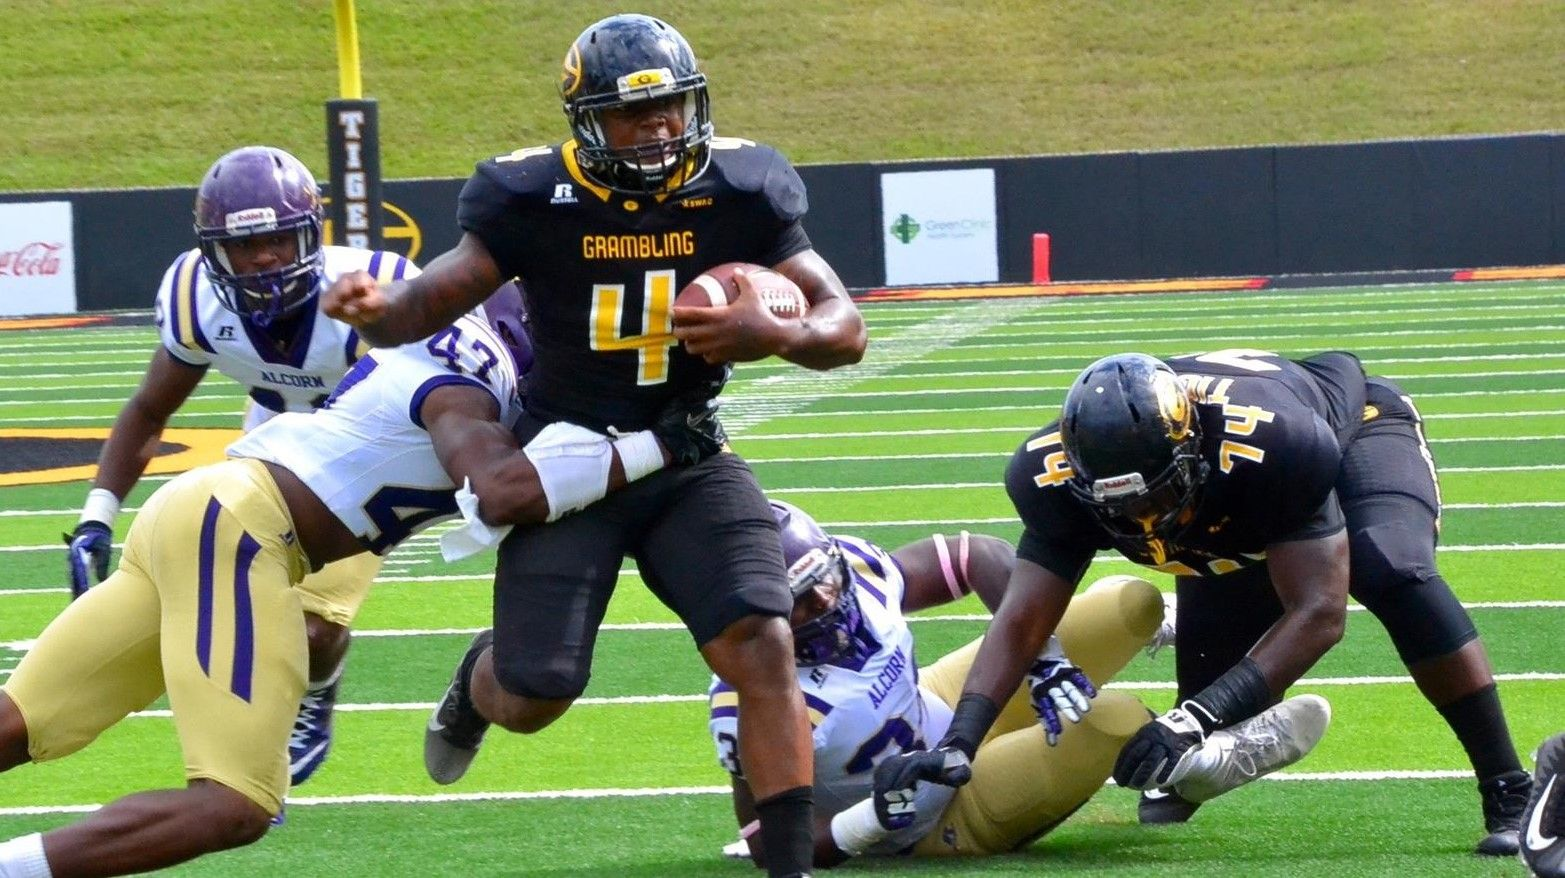 Grambling State Tigers Capitalize On Turnovers Upset Alcorn State Braves With Images Grambling Braves Football Helmets